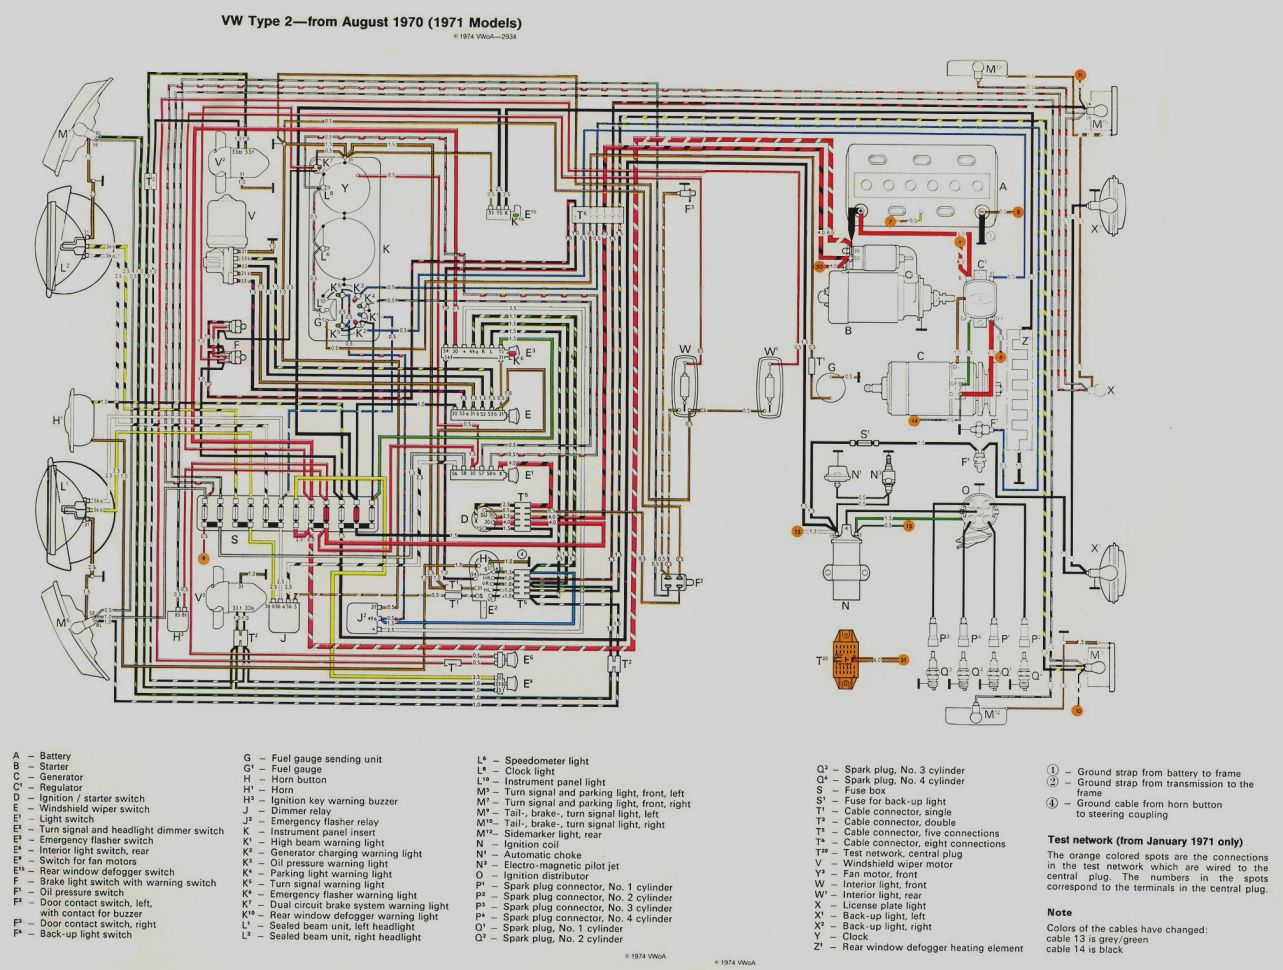 1996 volkswagen wiring diagram blog wiring diagram 1996 vw golf radio wiring diagram 1996 volkswagen wiring [ 1283 x 970 Pixel ]